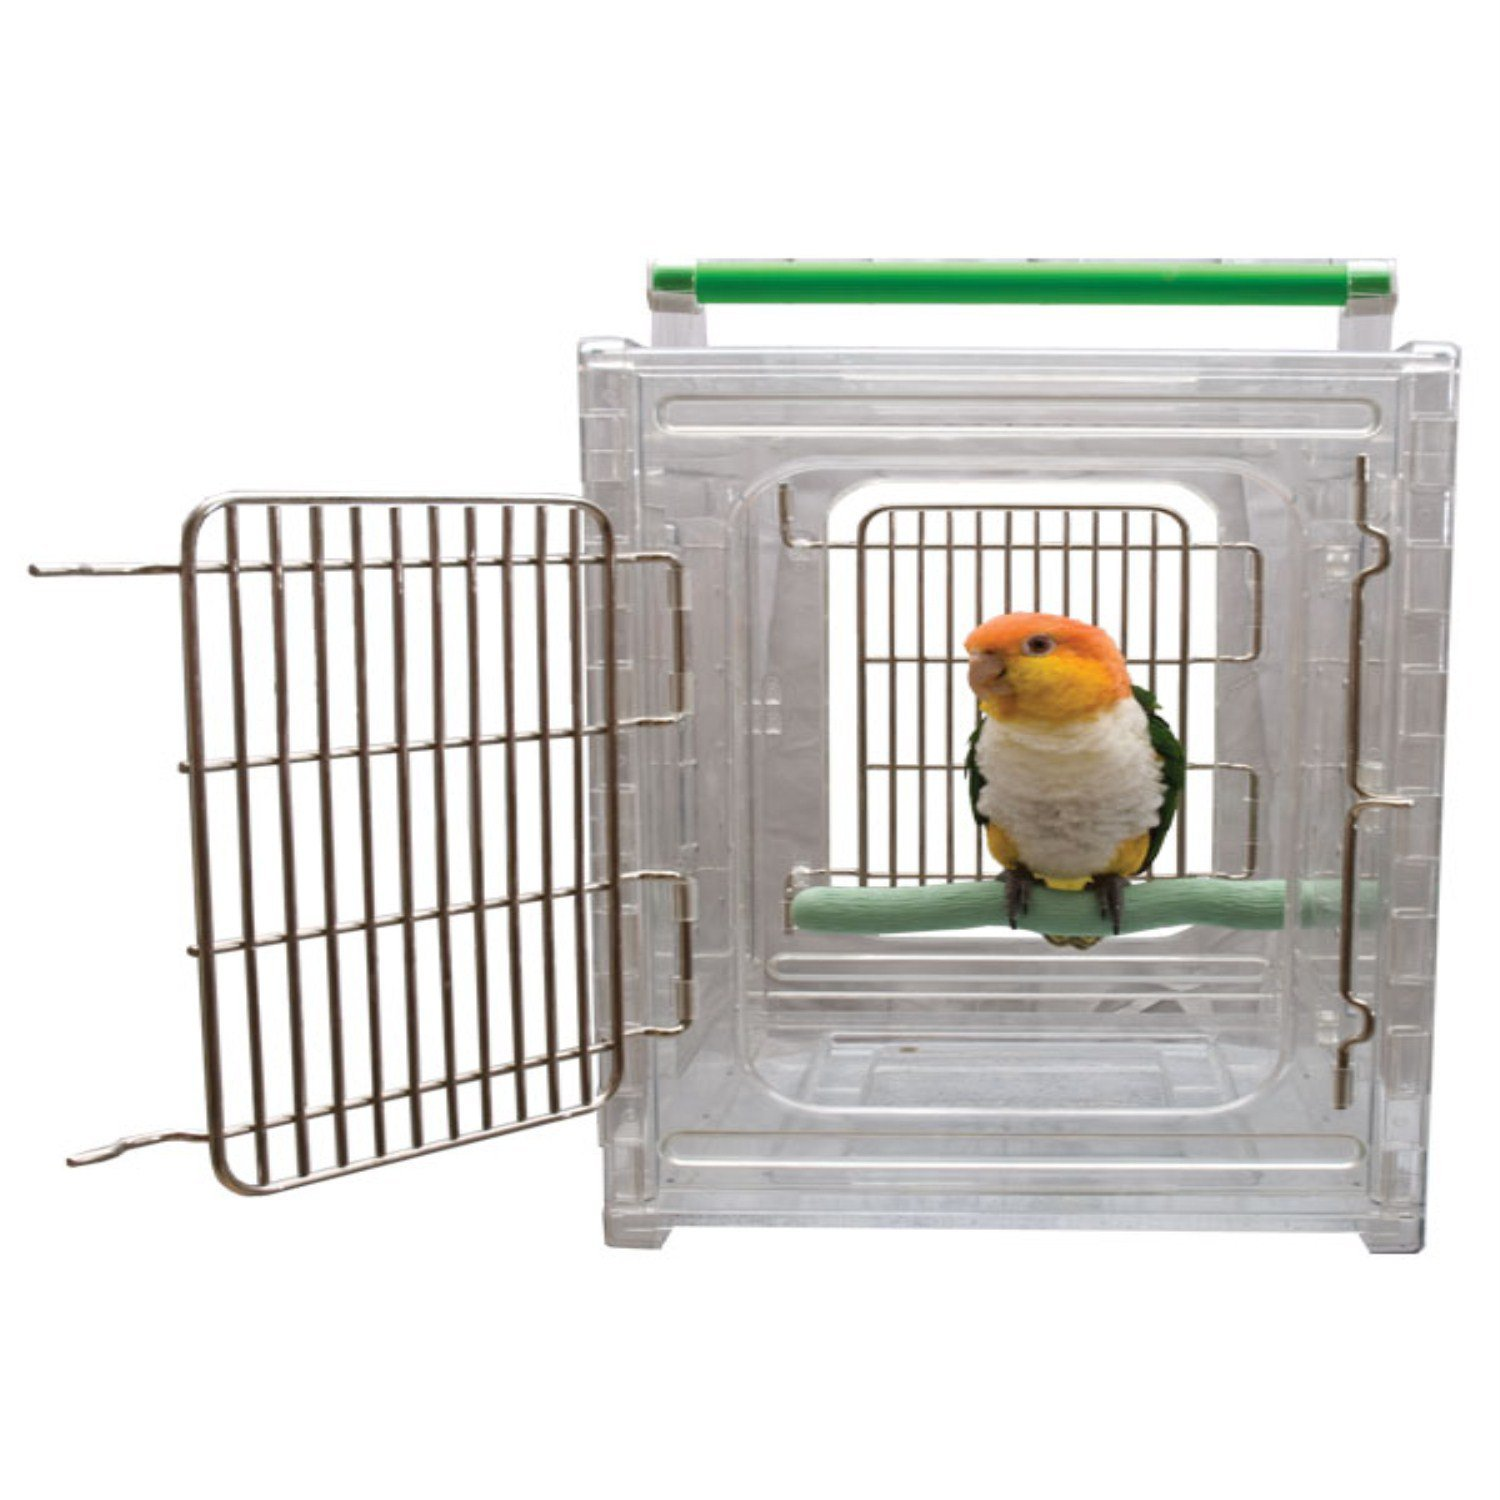 CaitecPerch & Go Polycarbonate Bird Carrier, Clear View Travel Cage by Paradise Toys